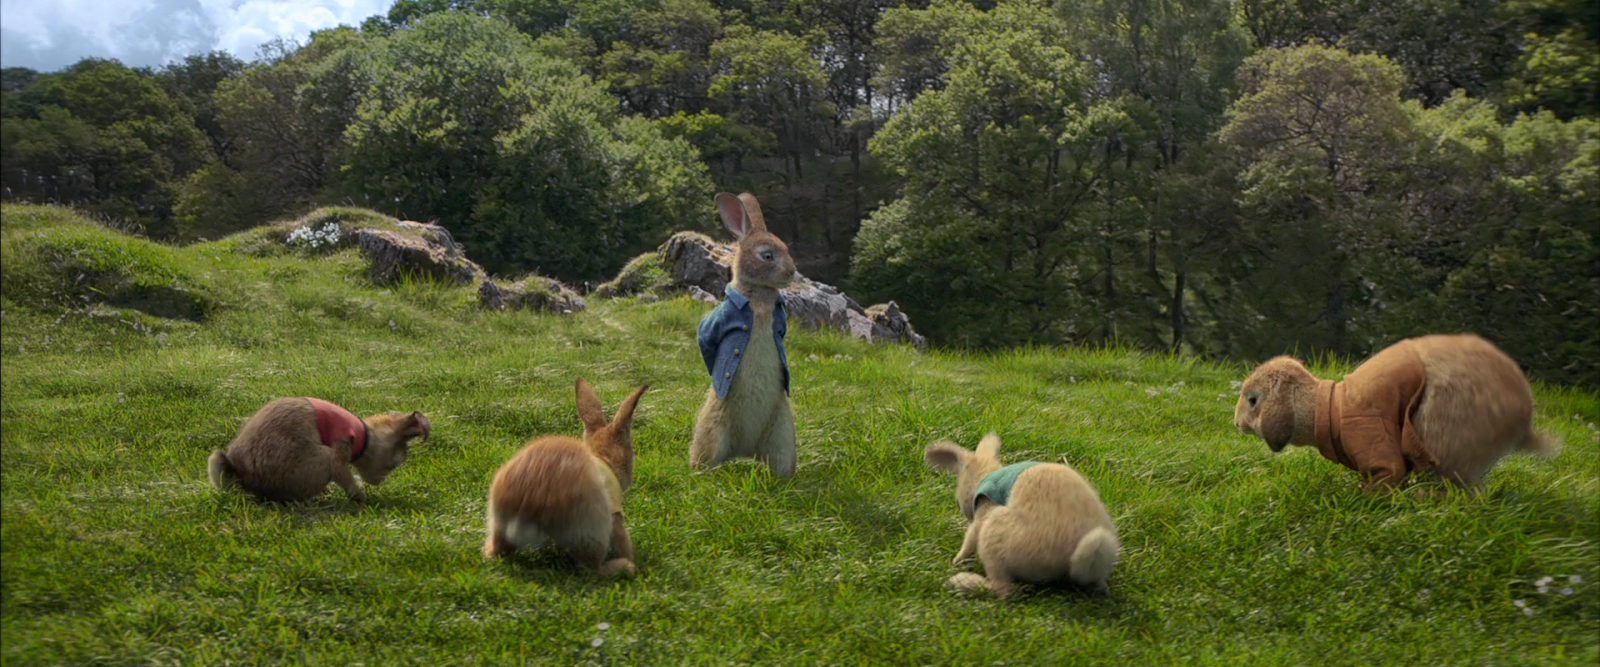 Las Travesuras de Peter Rabbit (2018) BRRip 720p Latino-Ingles captura 3